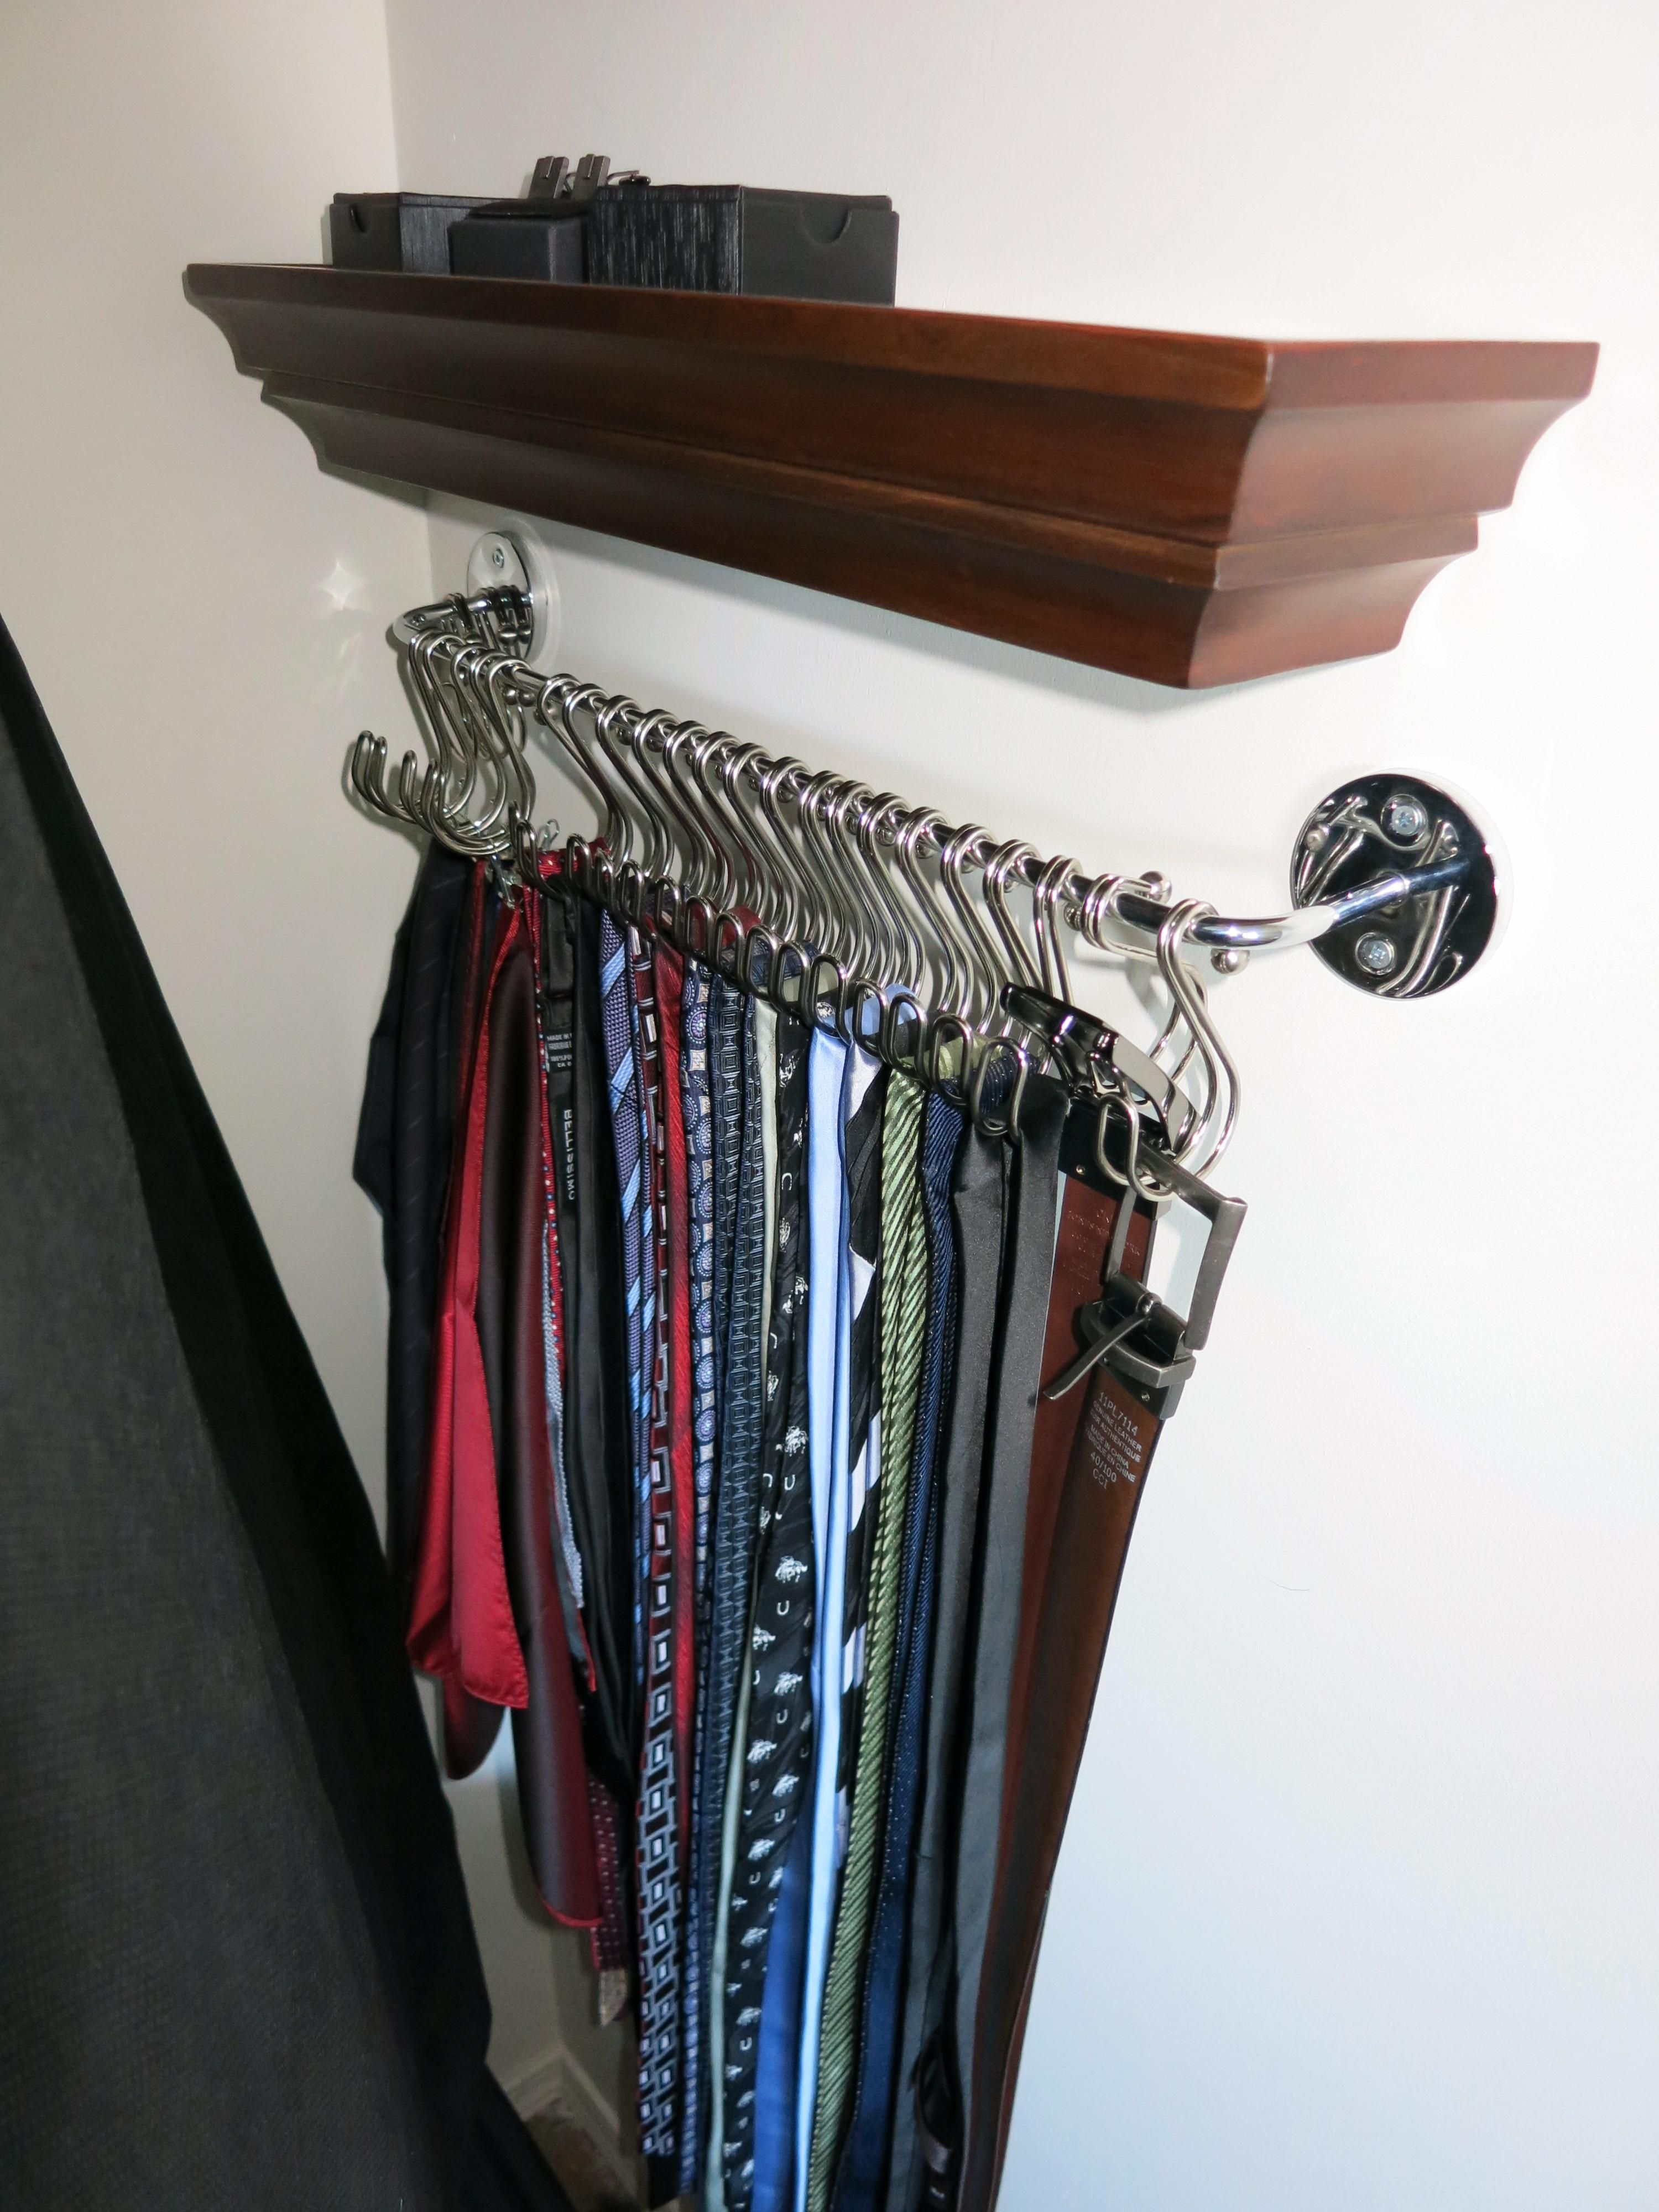 Suit accessory organization and storage